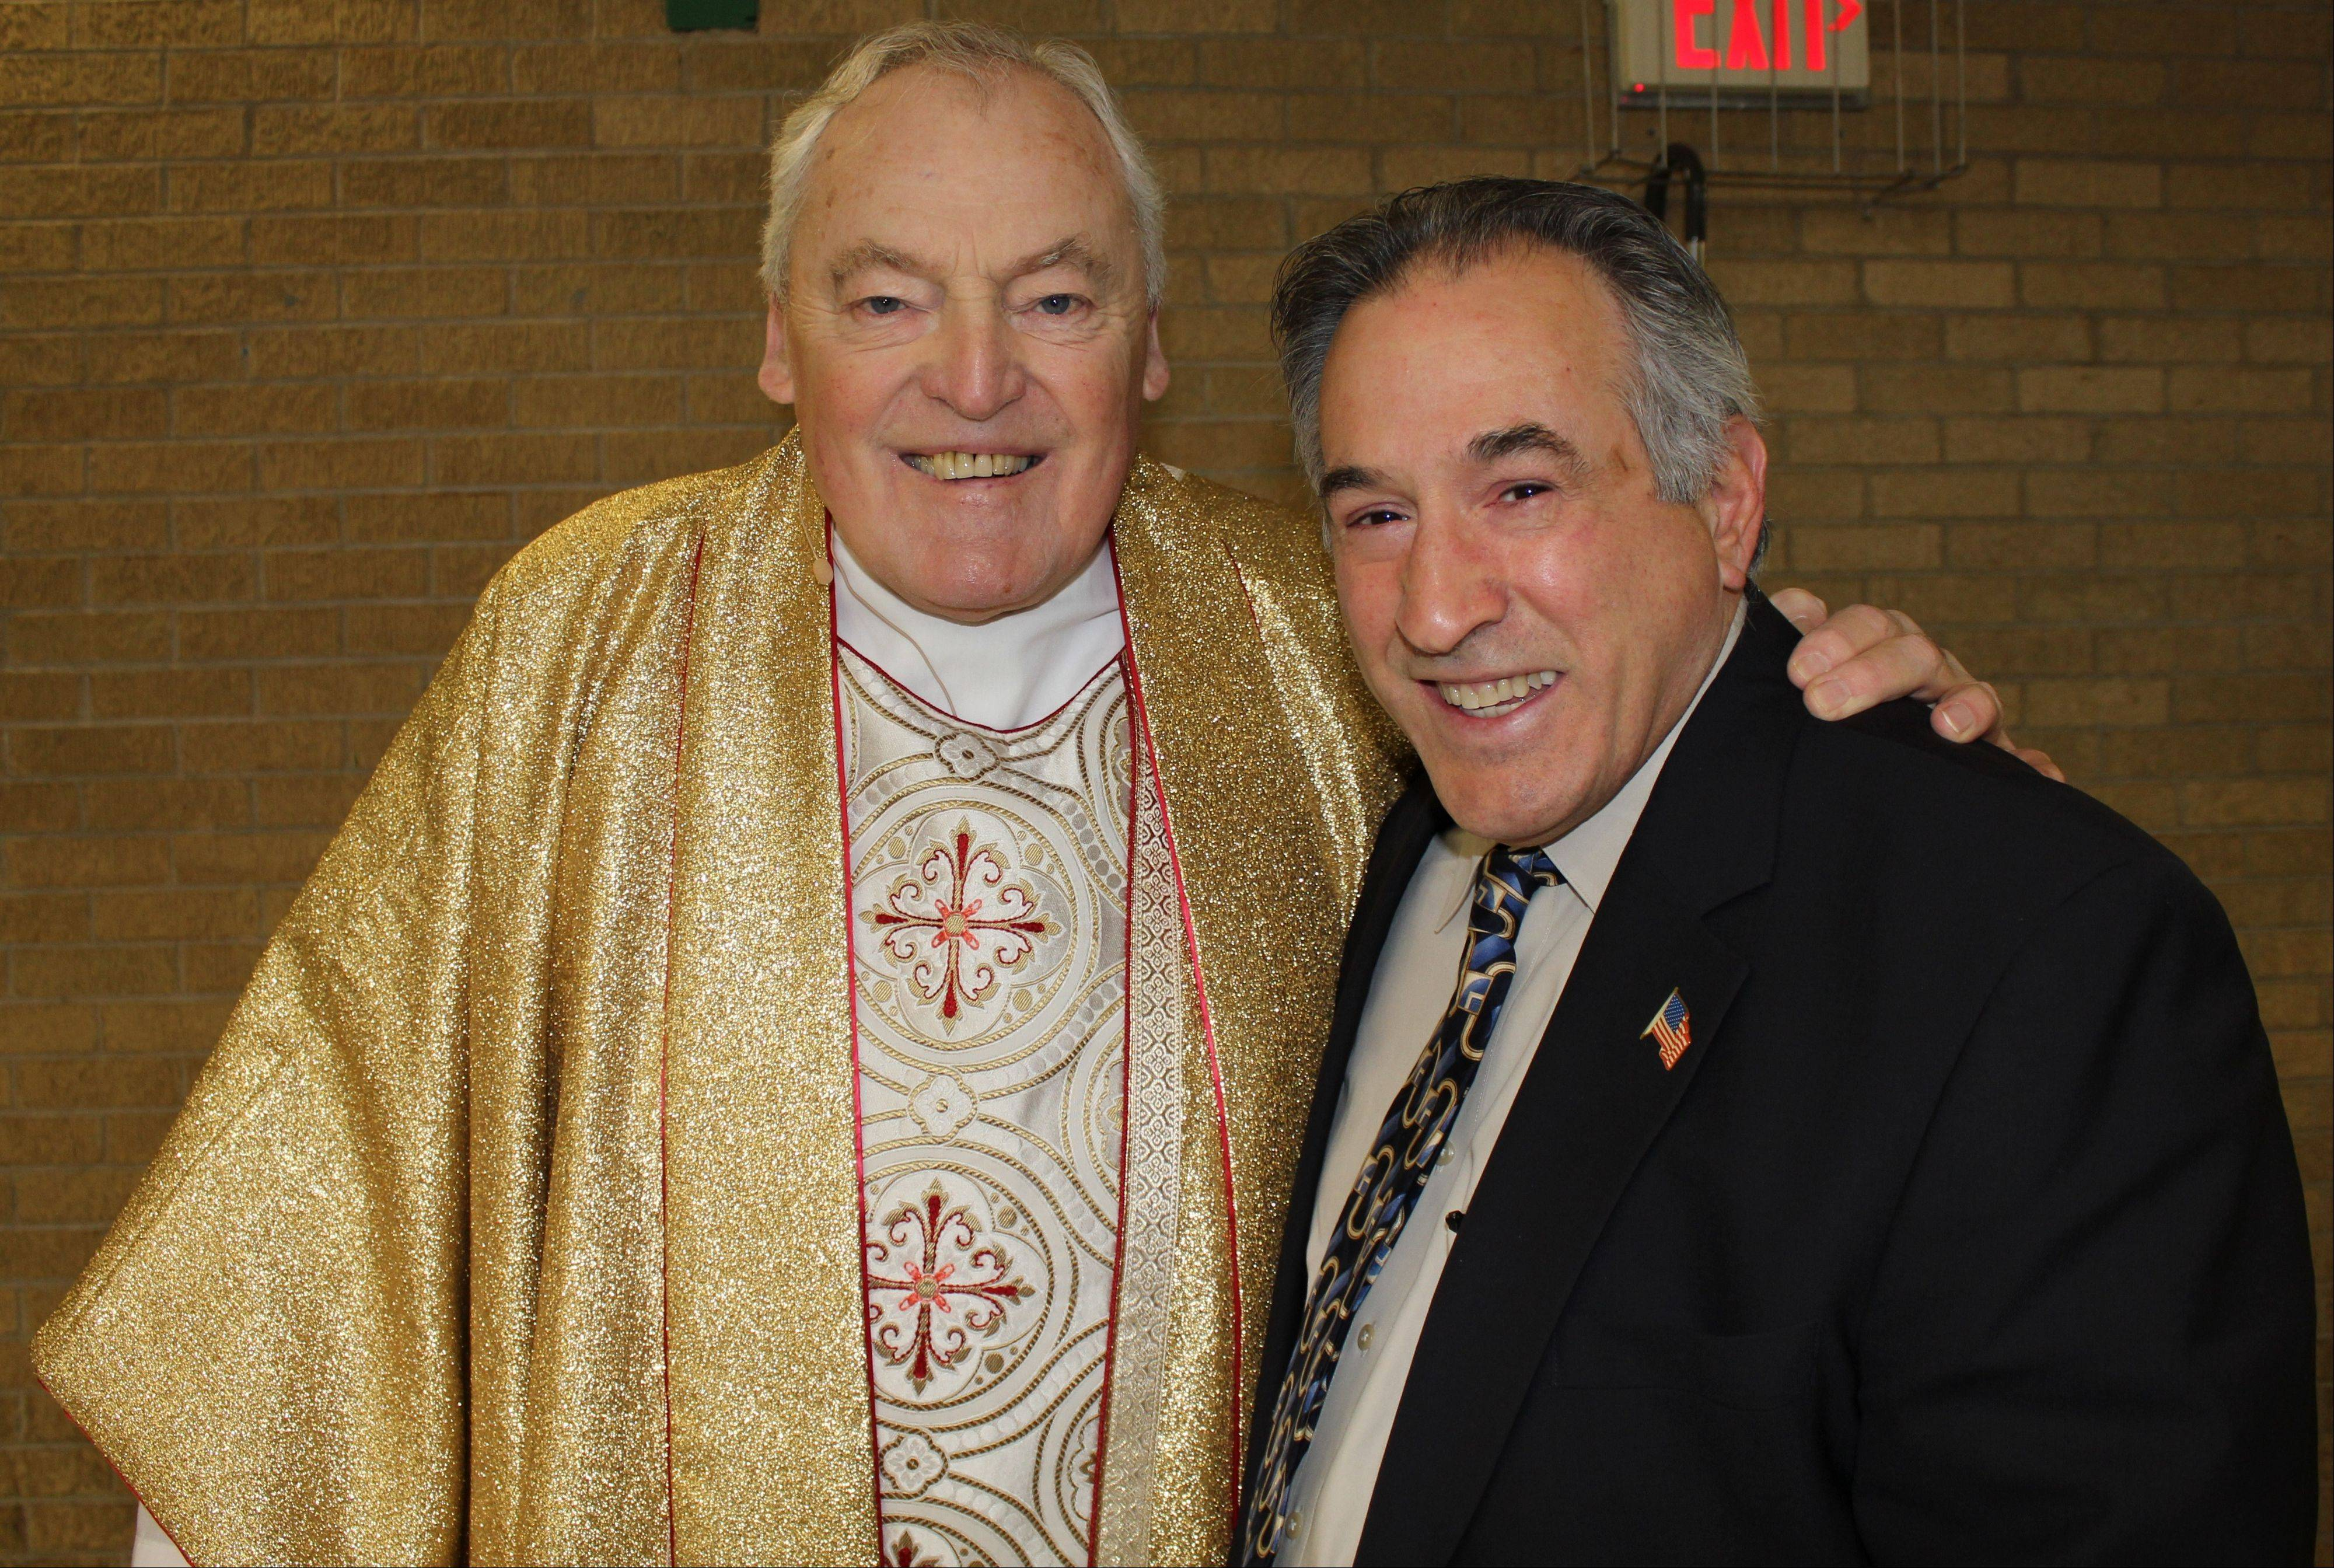 Father John P. Smyth and Des Plaines Mayor Martin J. Moylan pose for a photograph at the Jubilee event at Notre Dame.